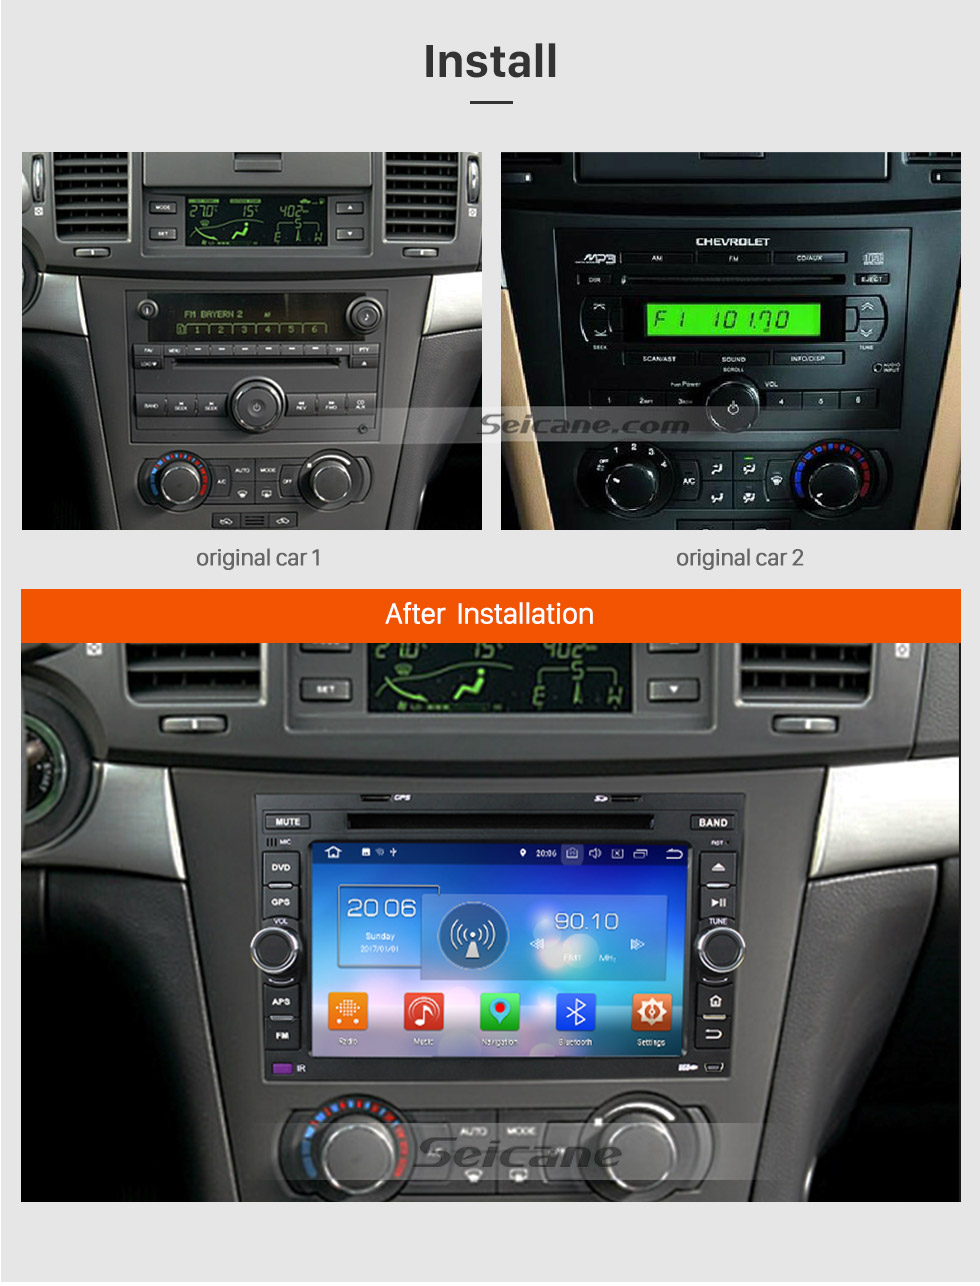 Seicane 2006-2011 Chevy Chevrolet LOVA Android 8.0  HD 1024*600 touch screen   Radio GPS navigation system DVD player  Bluetooth Music OBD2 DVR Rearview camera TV 1080P Video 3G WIFI Steering Wheel Control USB Mirror link